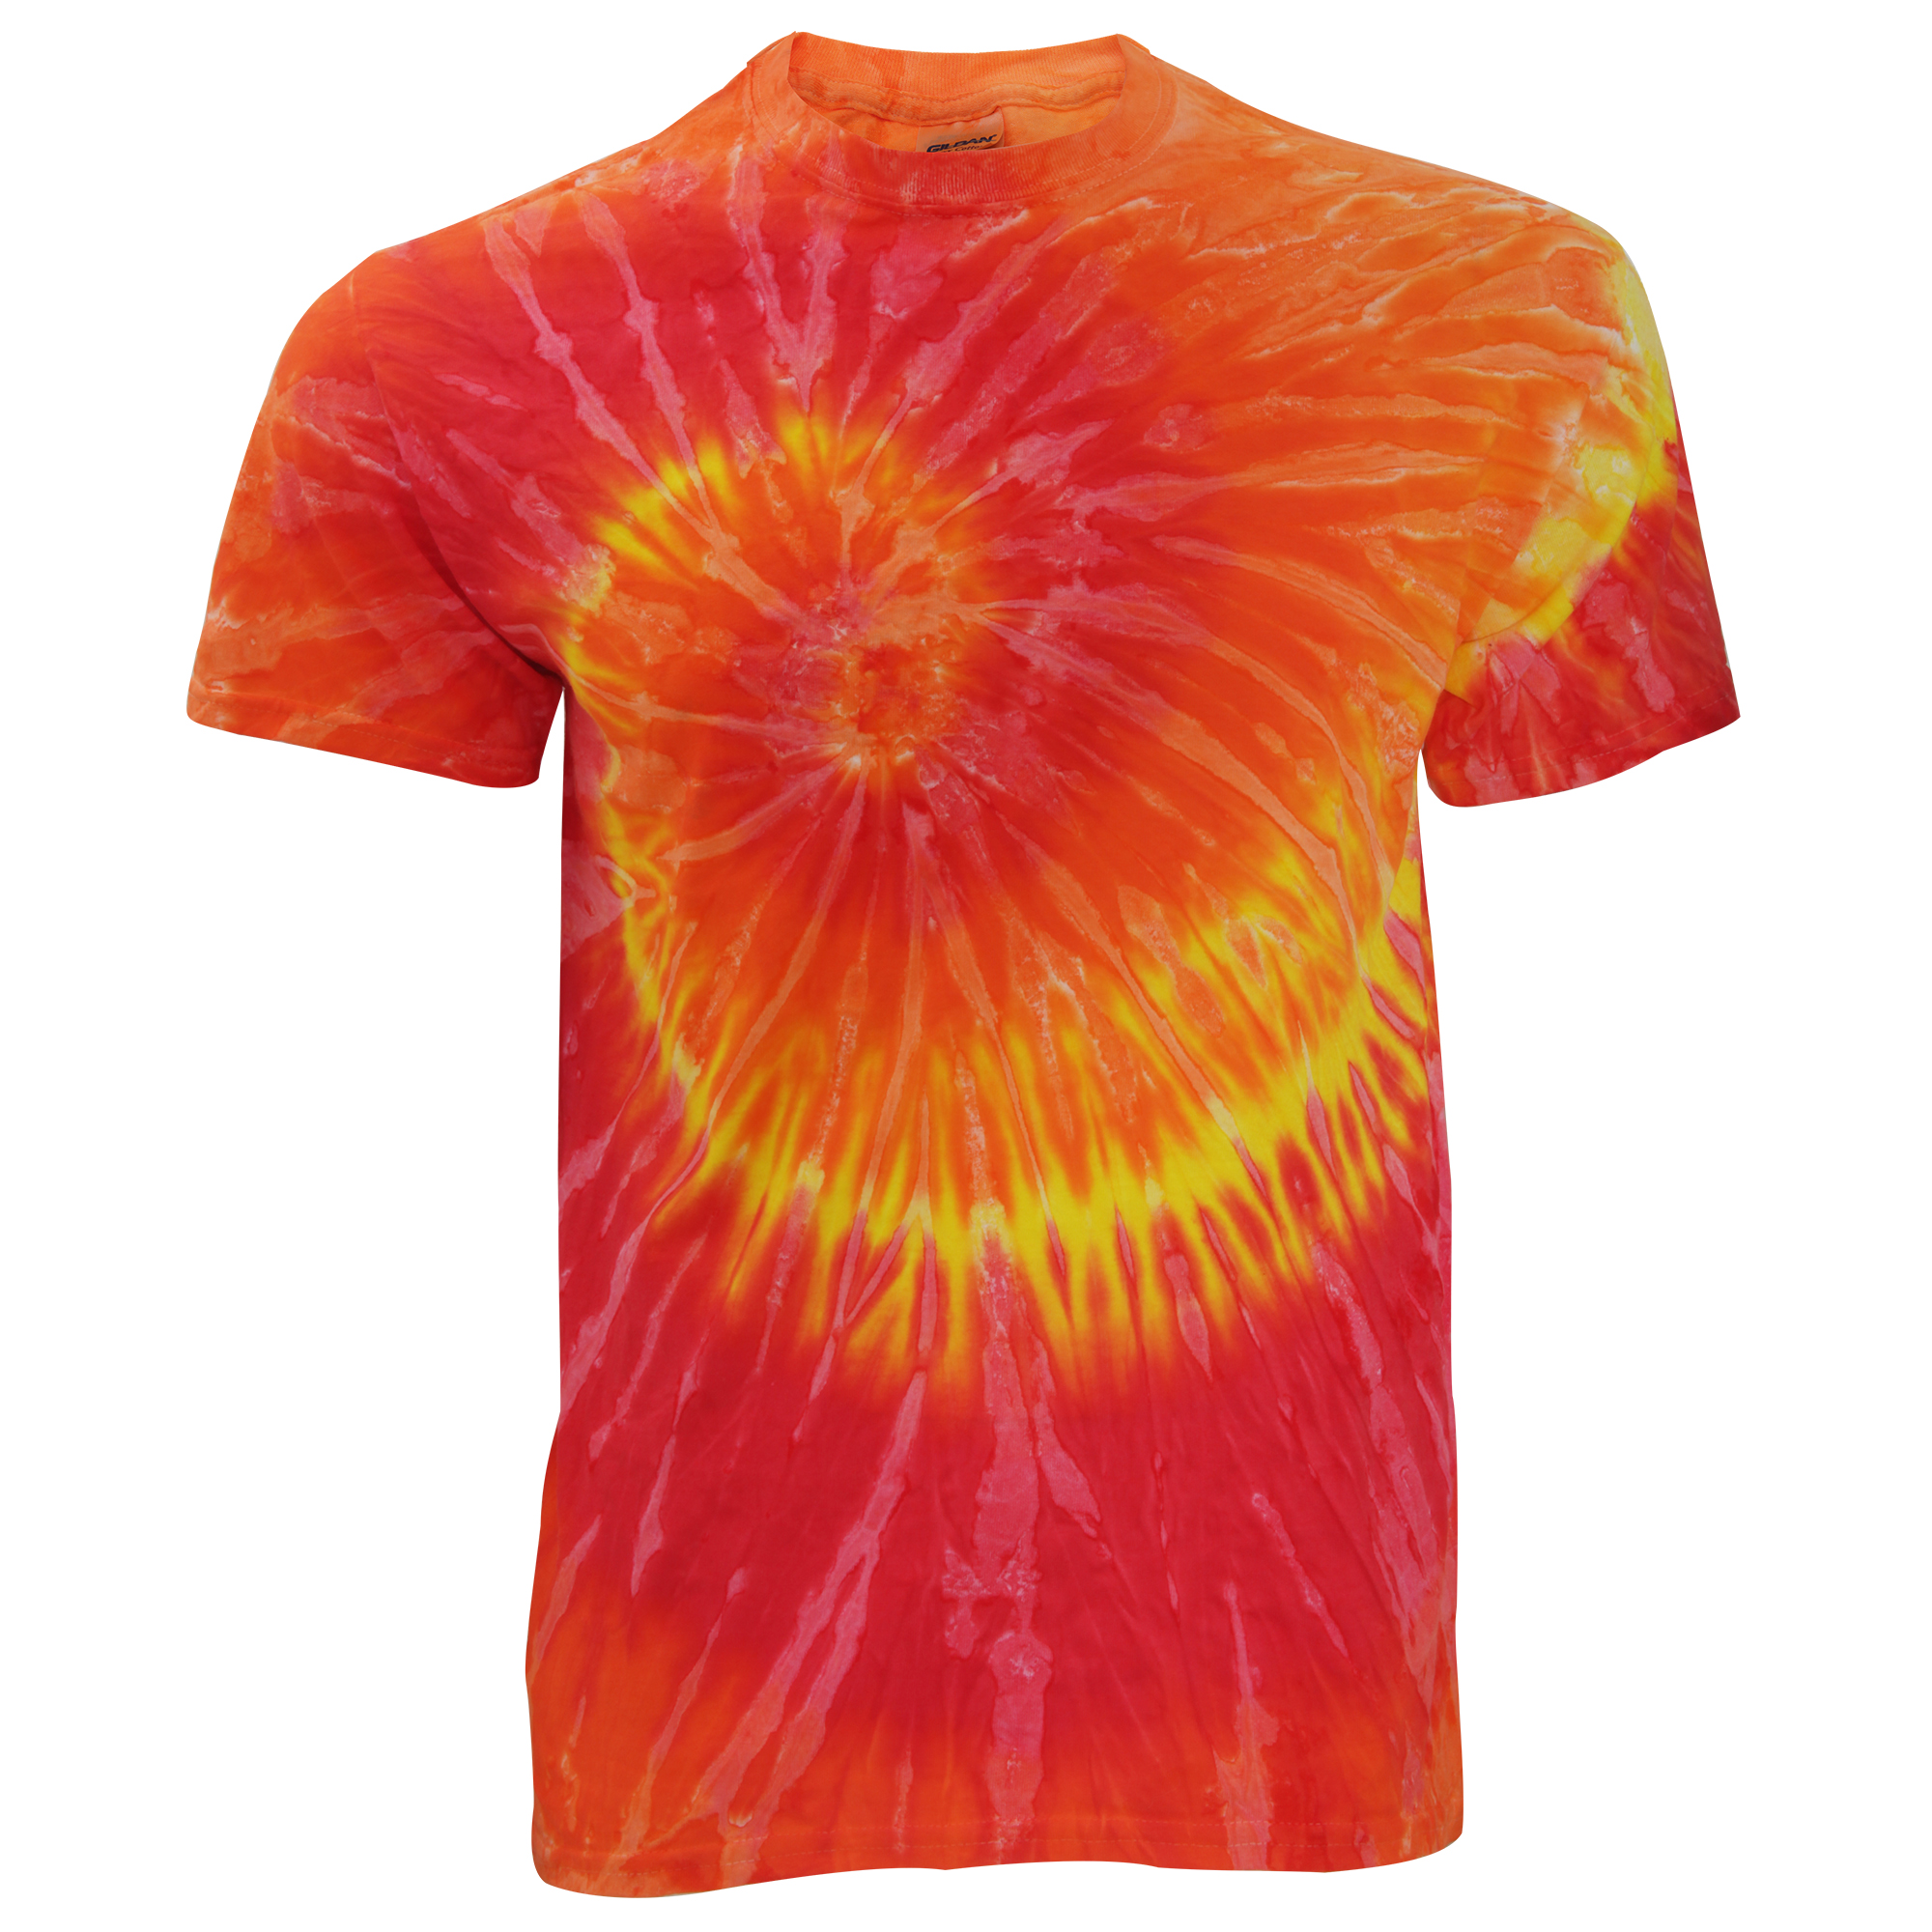 Tduk mens short sleeve rainbow tie dye t shirt ebay for Nike tie dye shirt and shorts